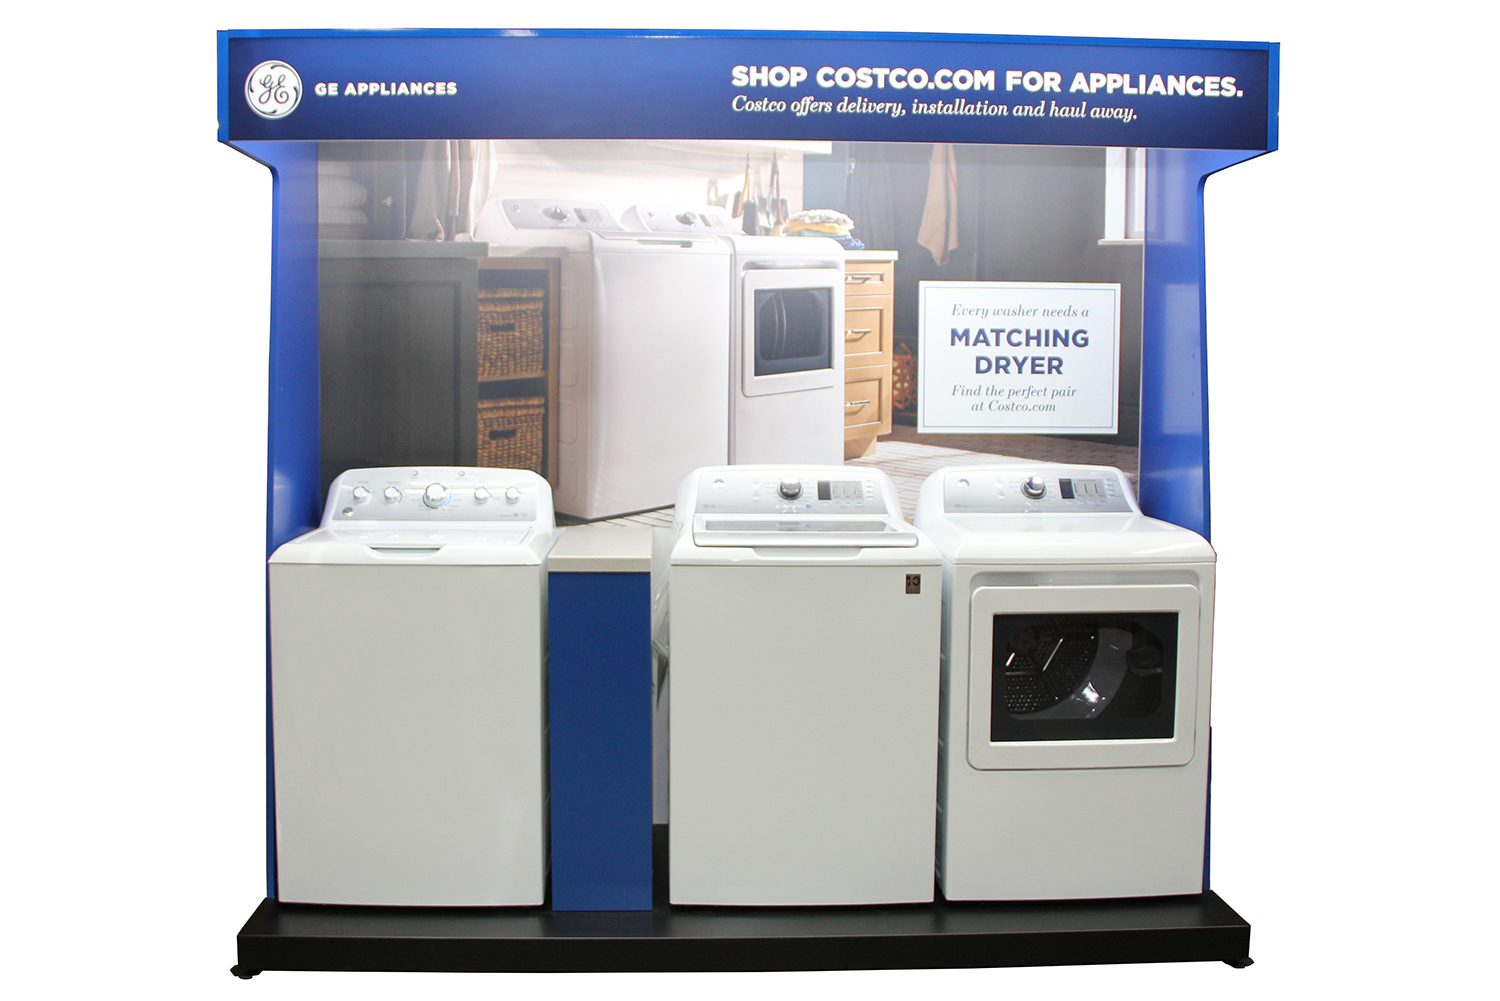 Ge appliances laundry and kitchen appliances now sold at - Ge kitchen appliances ...